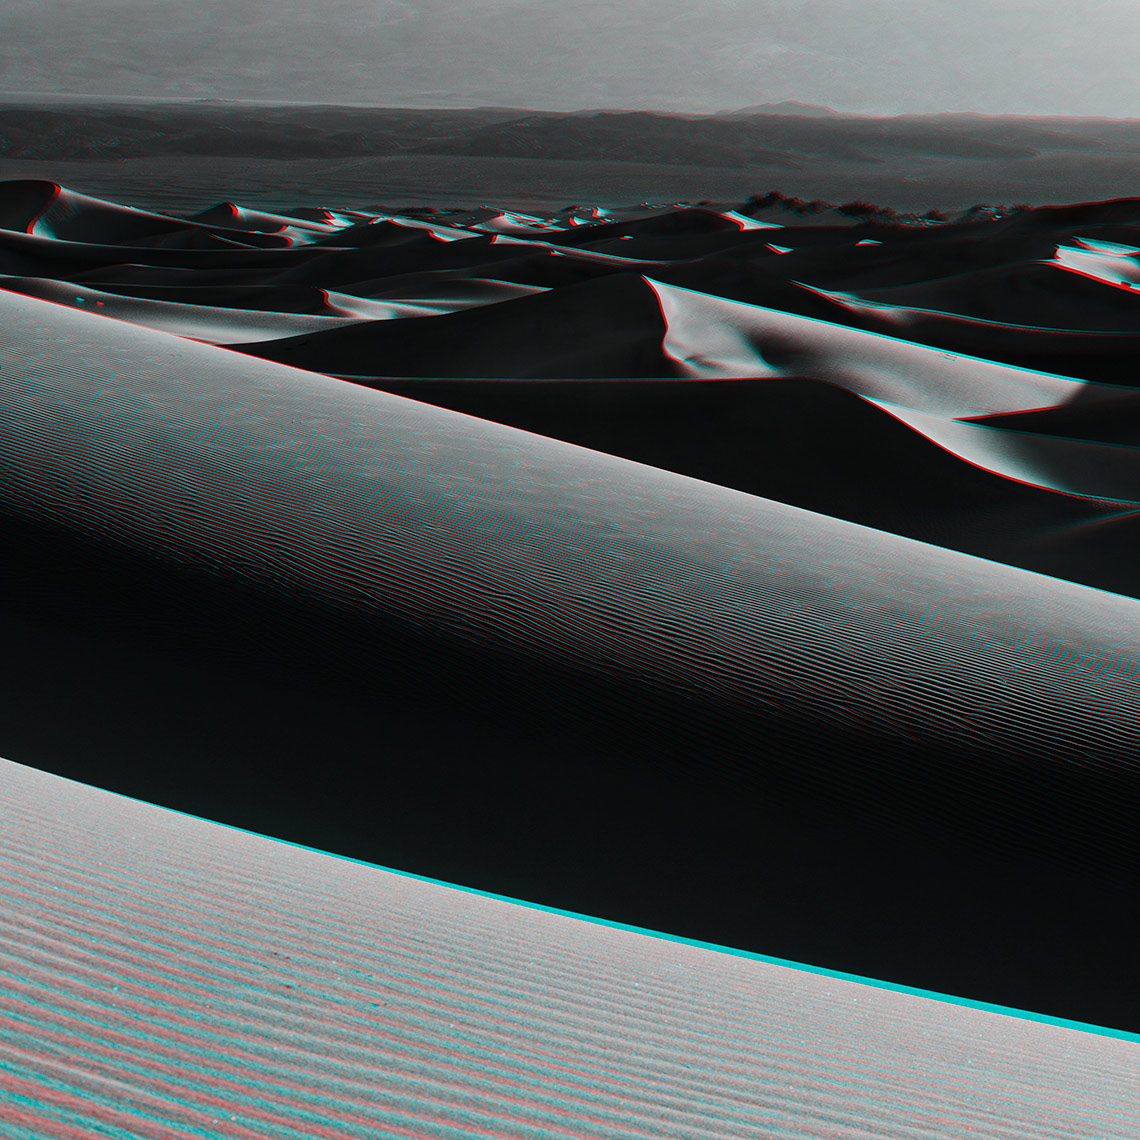 007-1303_DeathValley_Dunes_3D-015-crop